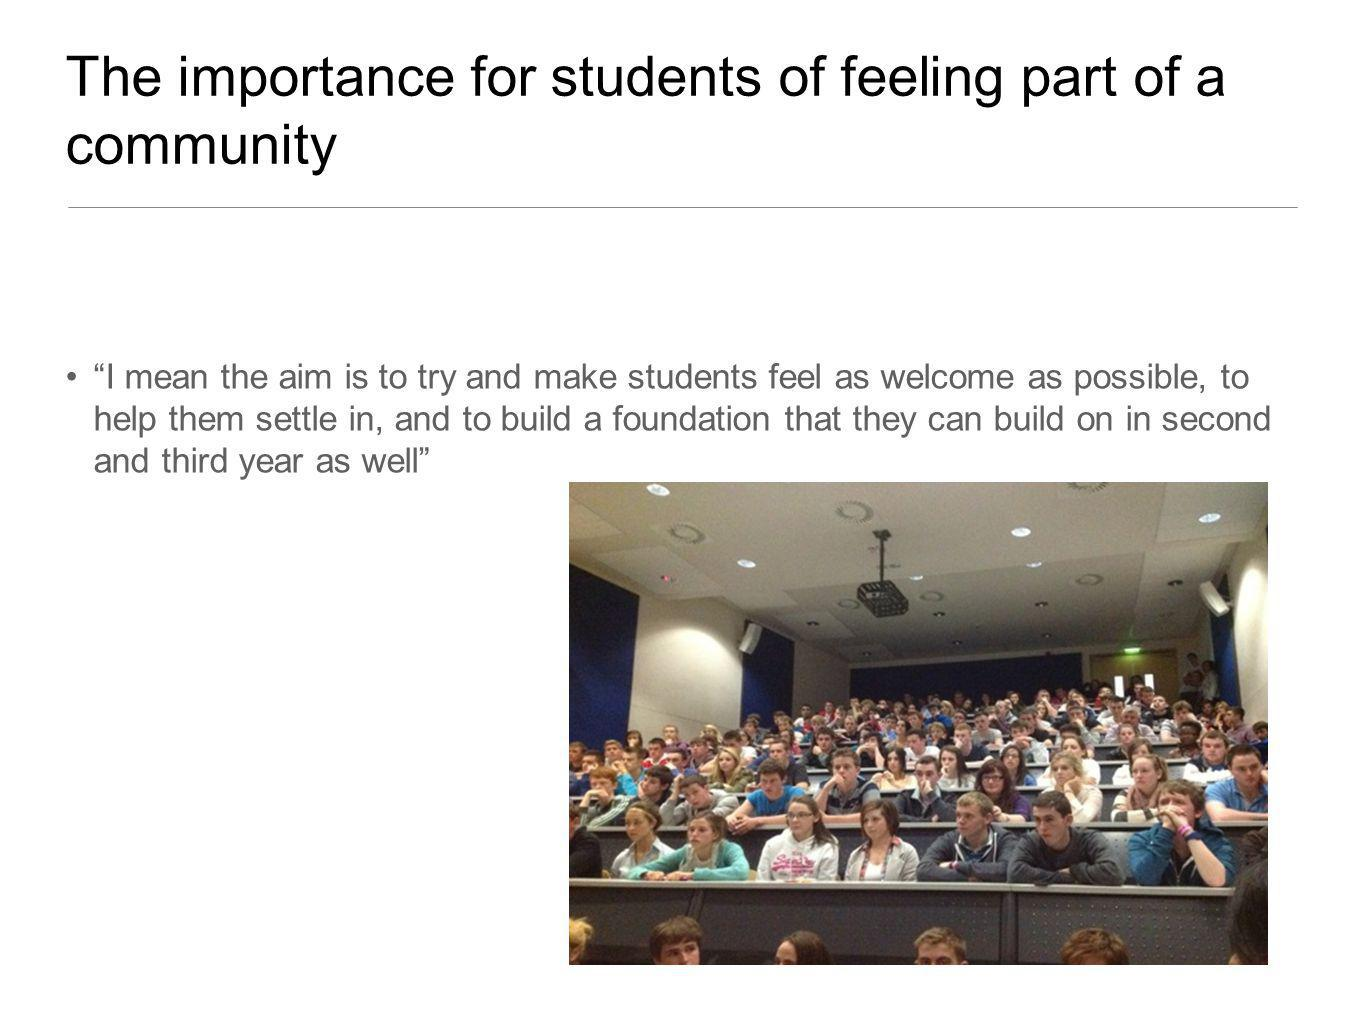 The importance for students of feeling part of a community I mean the aim is to try and make students feel as welcome as possible, to help them settle